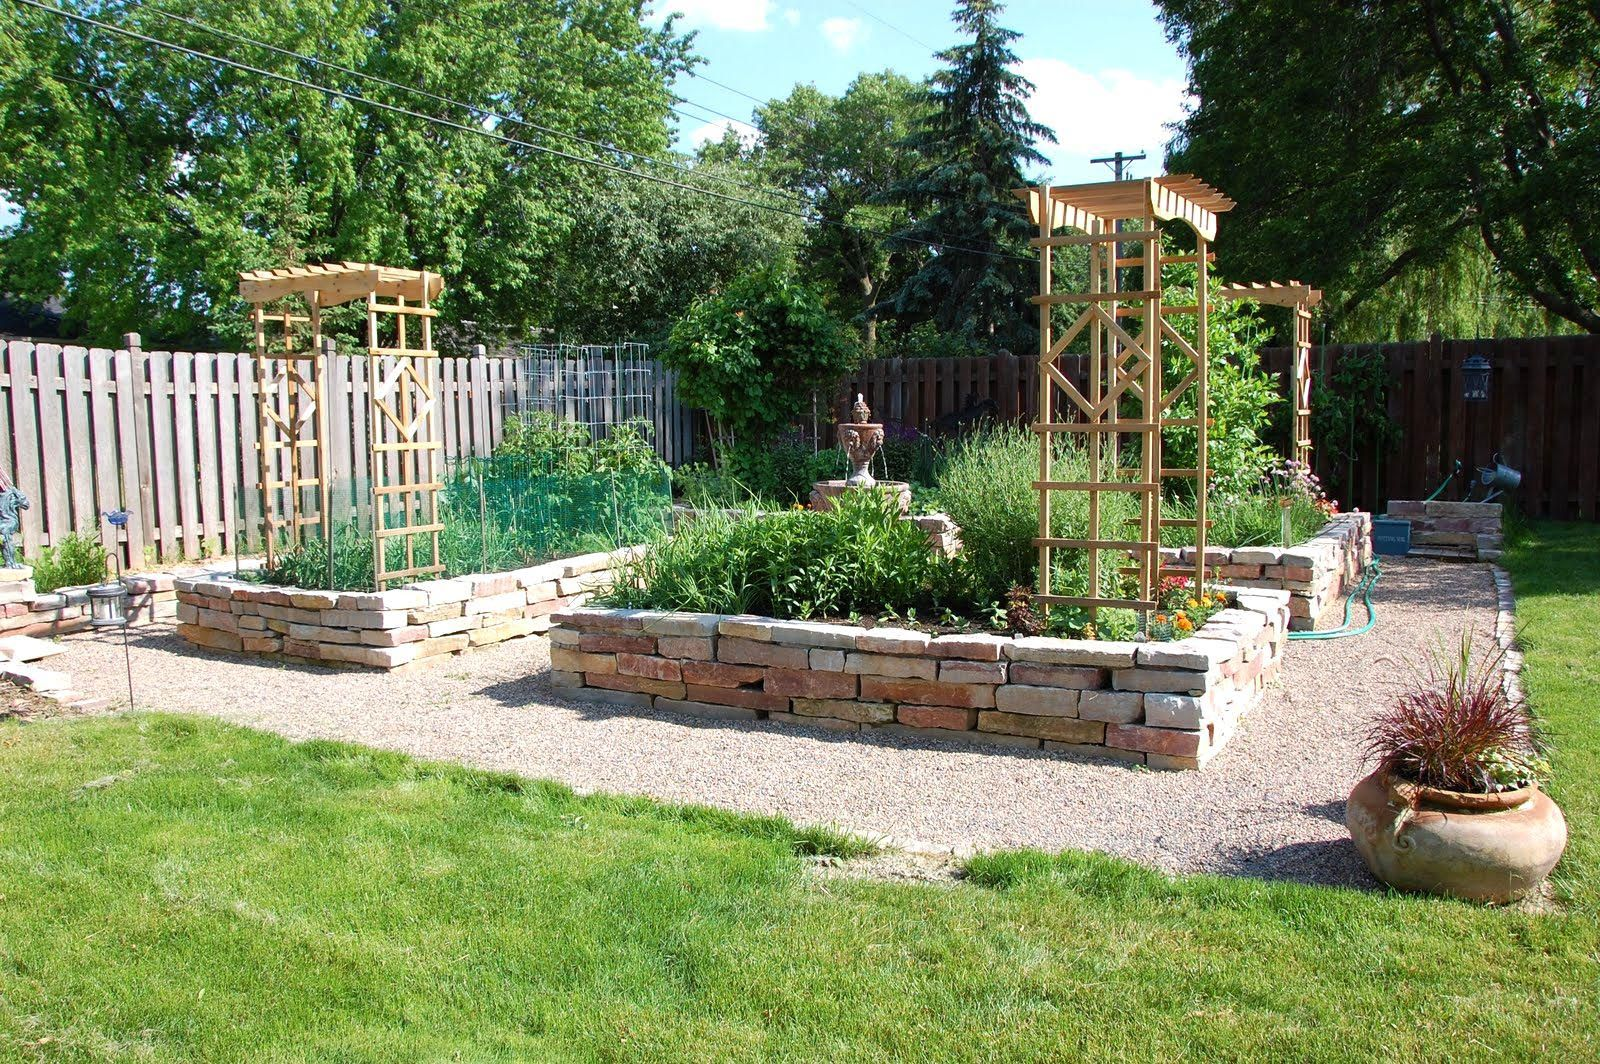 Vegetable garden design  Planning Raised Vegetable Garden Layout  veggie garden  Pinterest